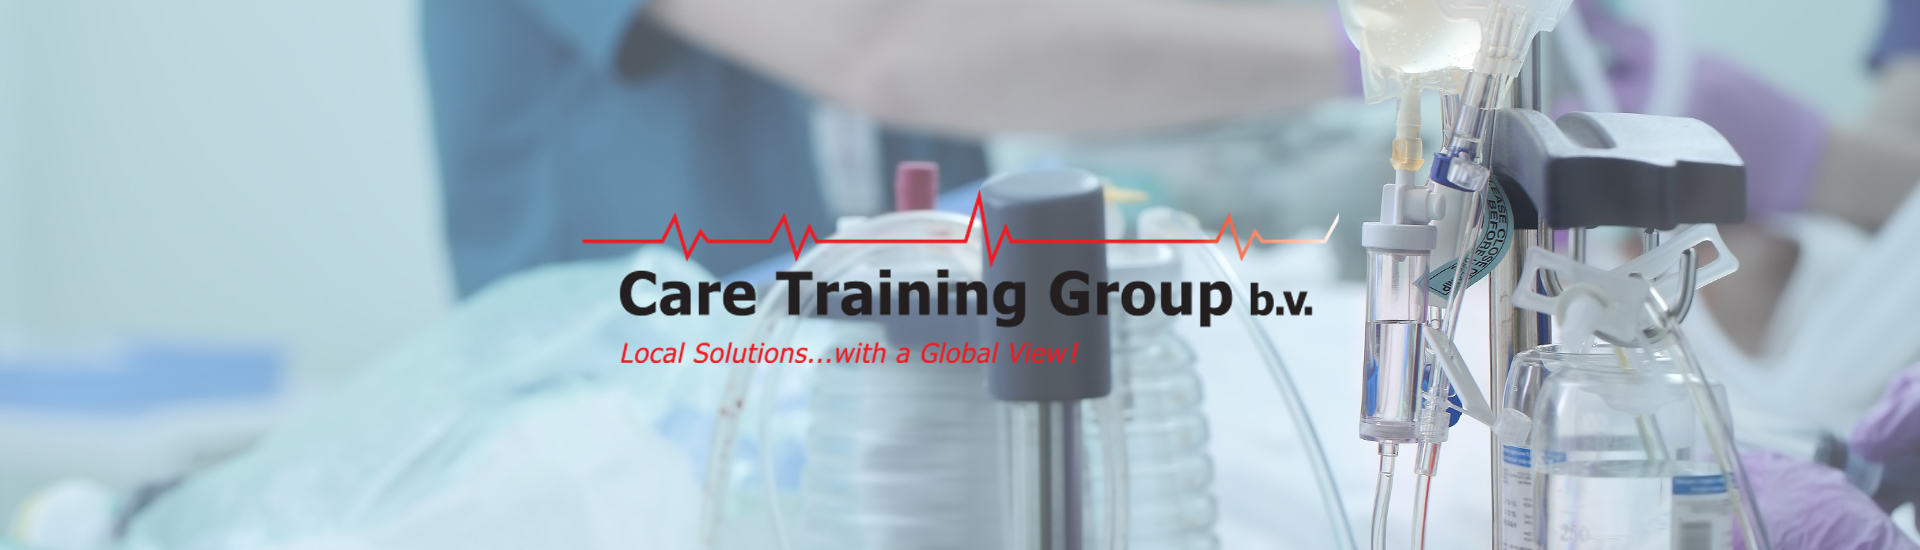 ctgnetwerk Care Training Group Slider